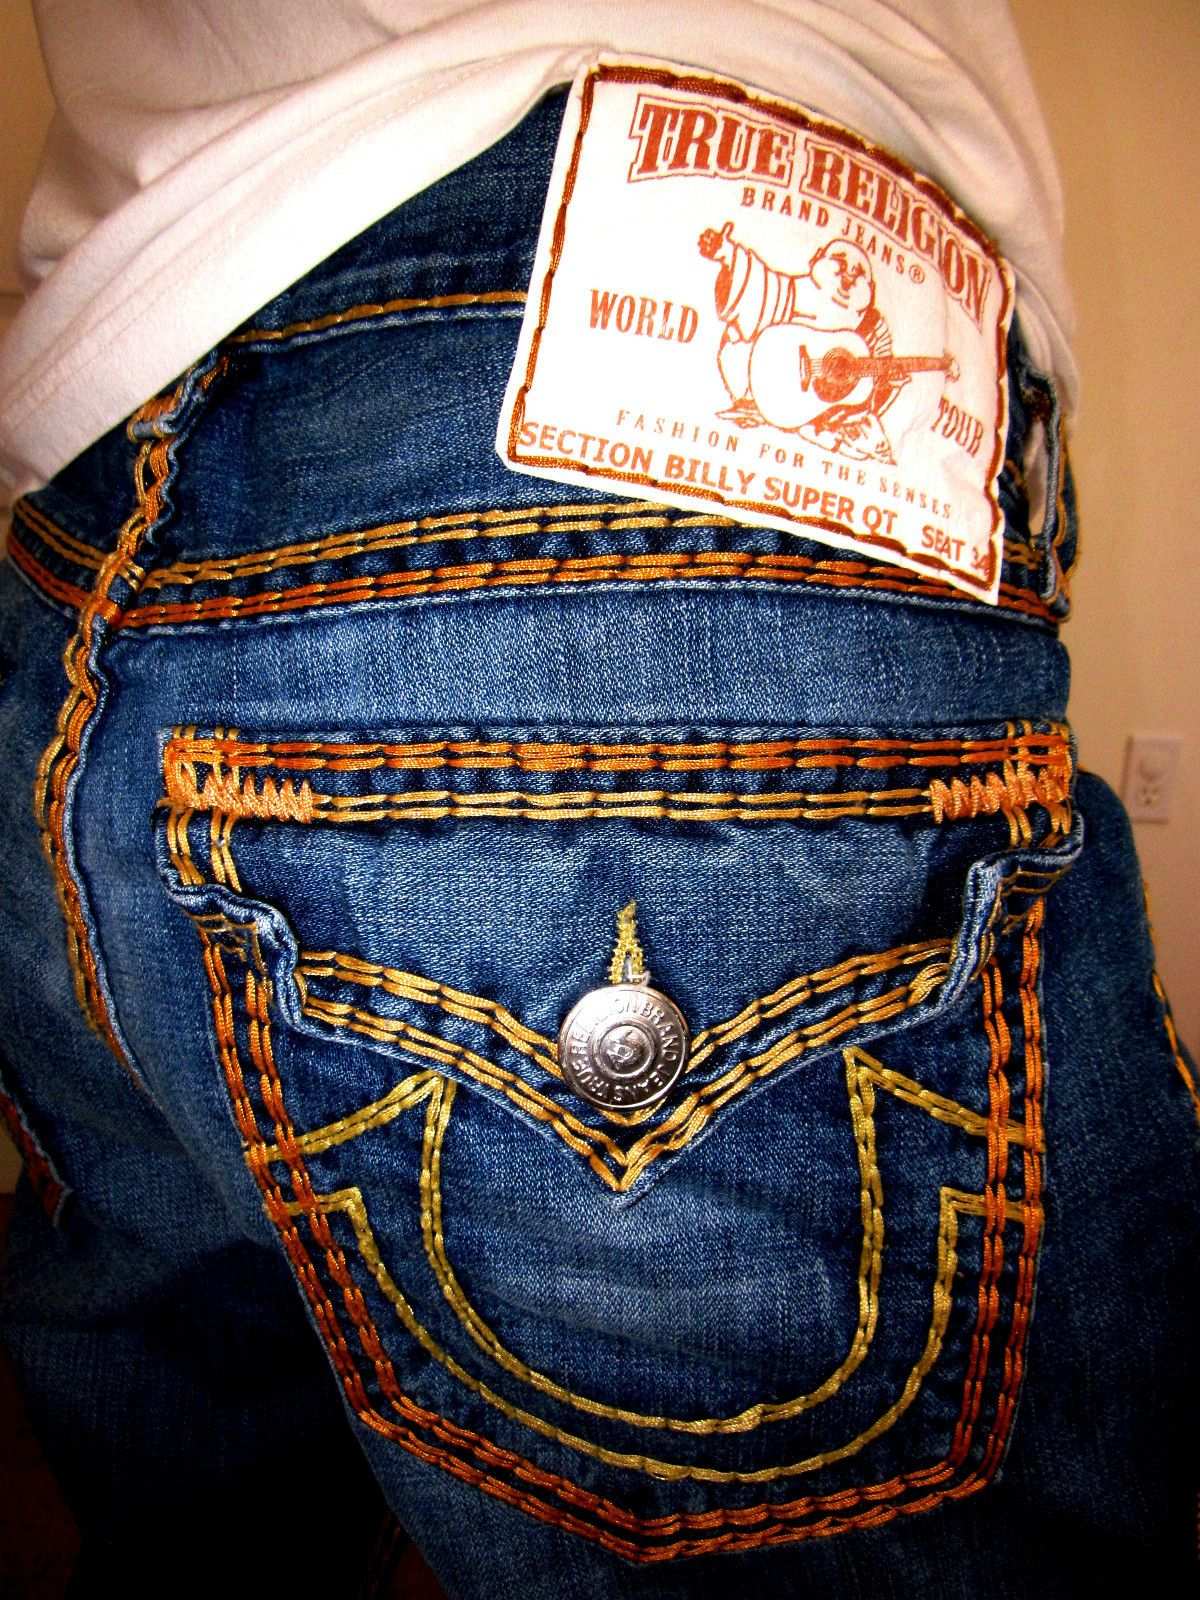 True Religion Jeans (Men's Pre-owned Billy Super QT Heavy Yellow ...